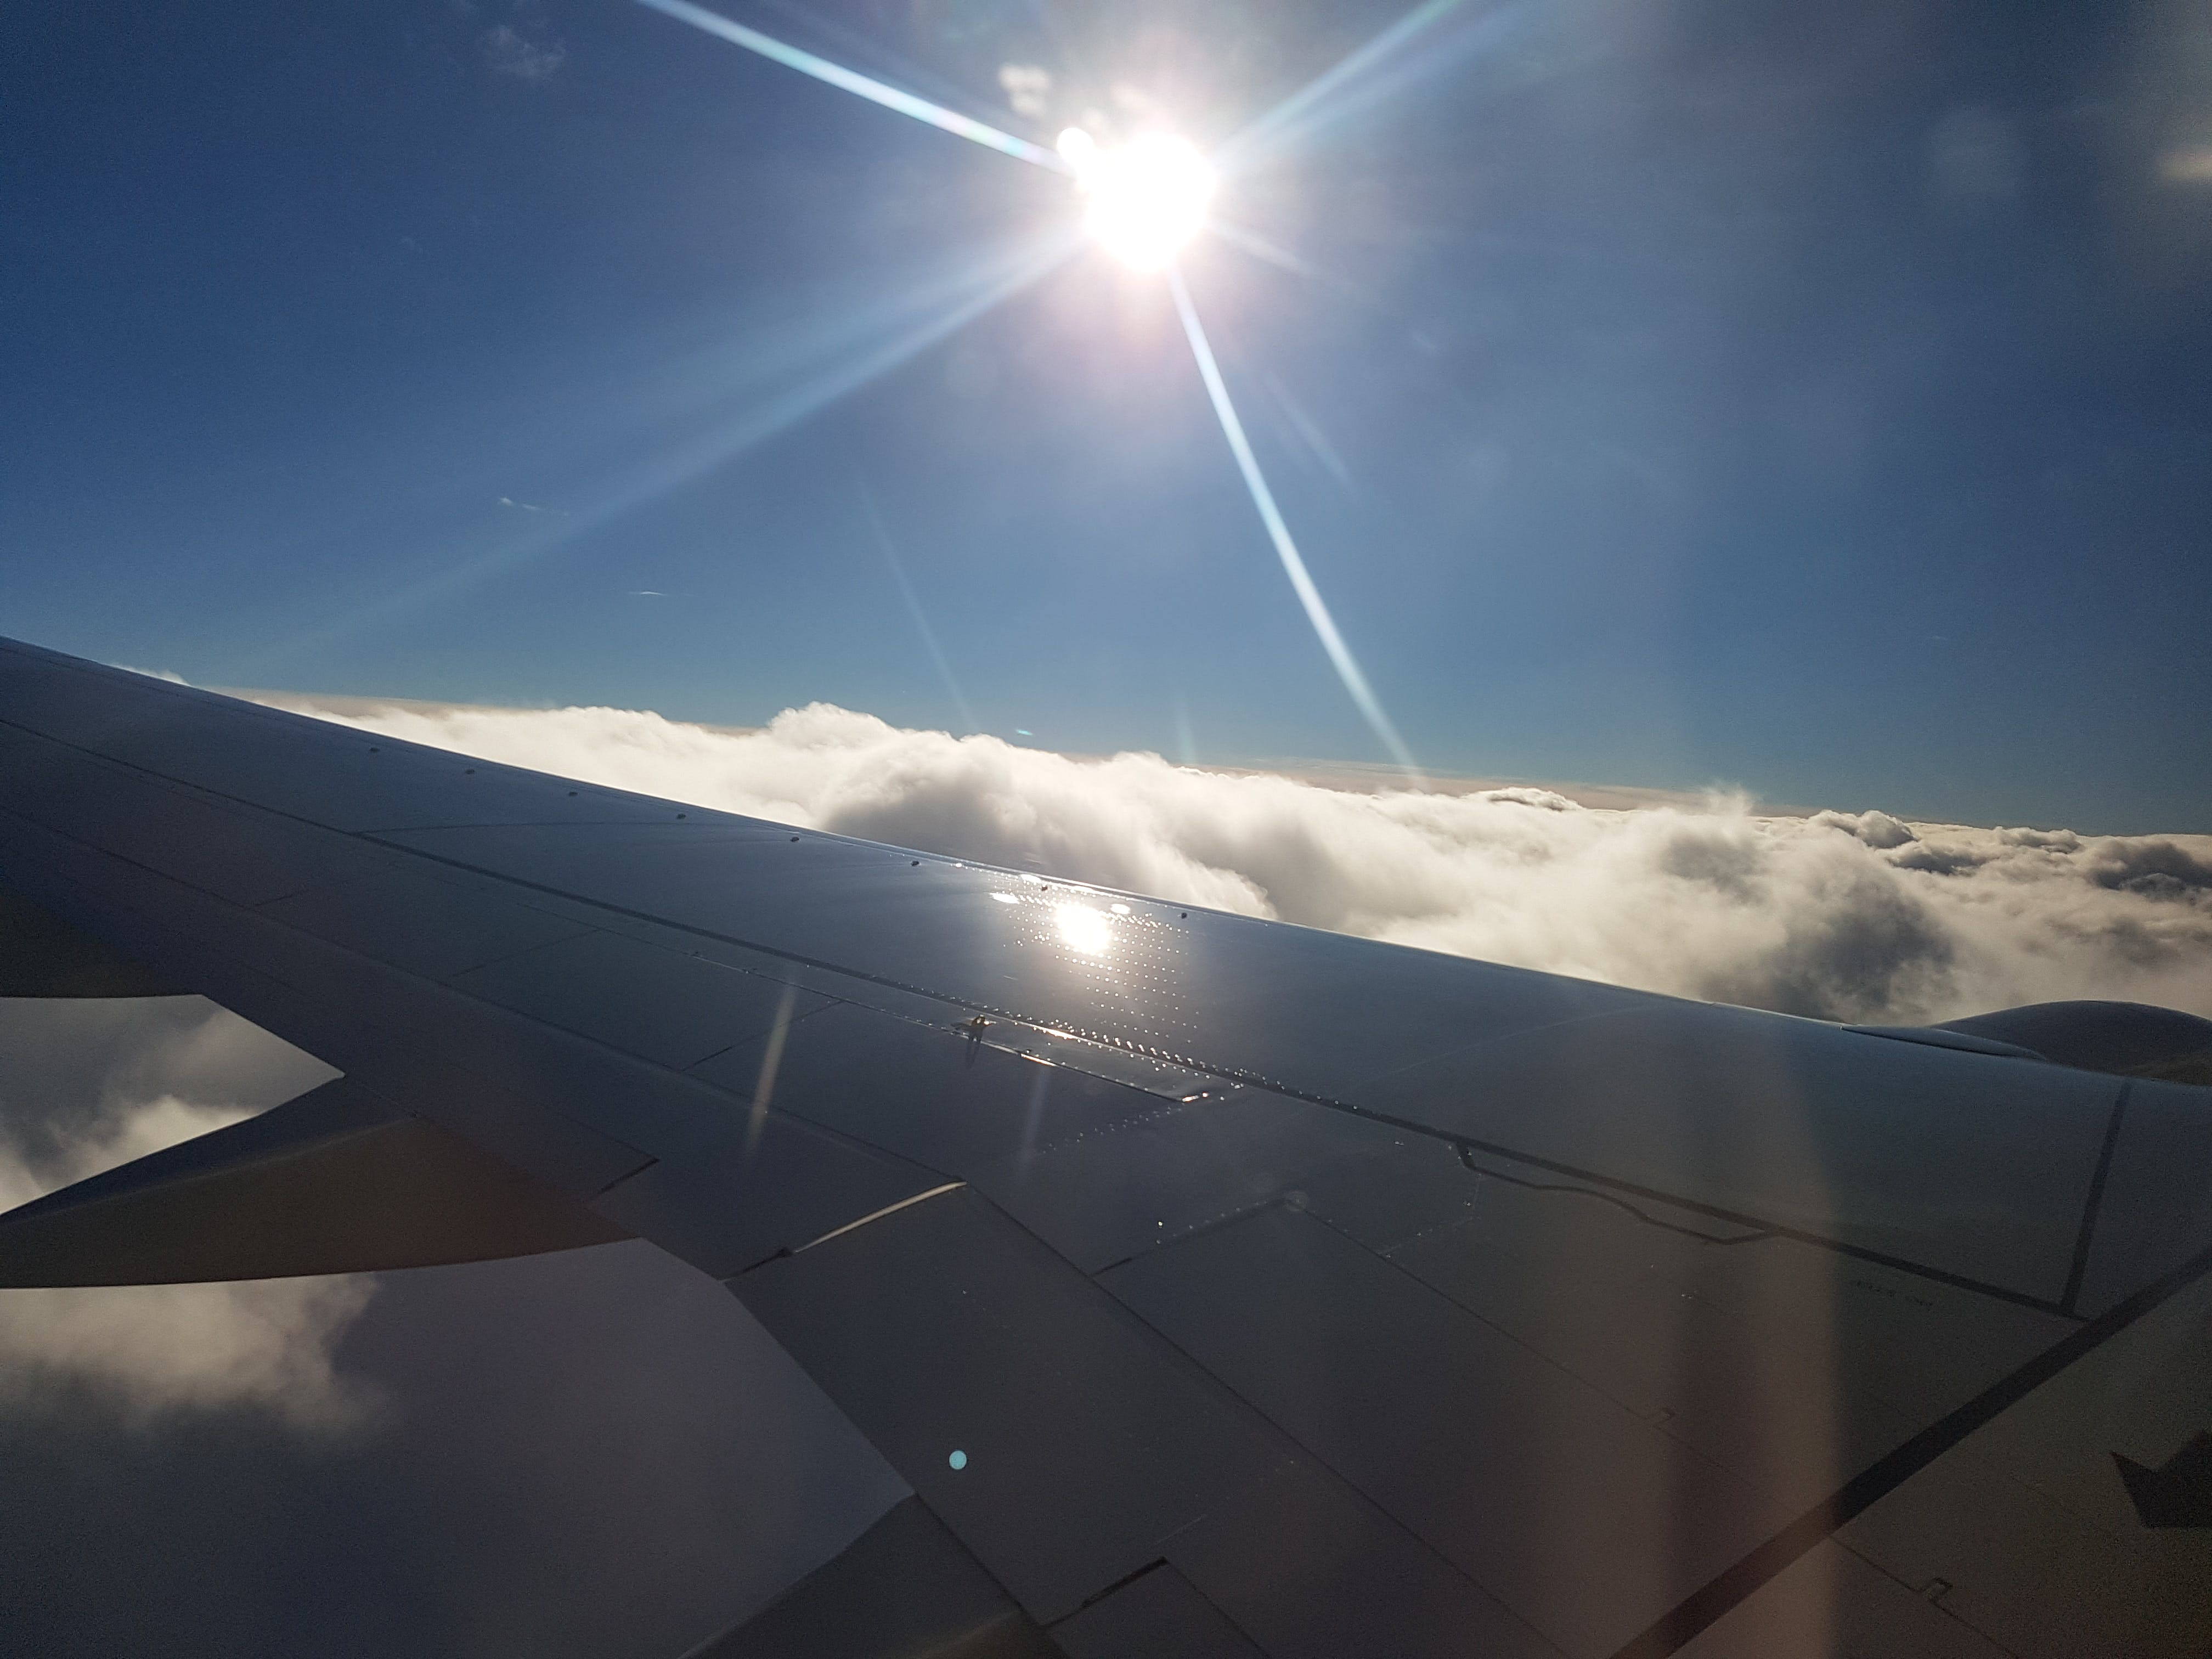 Free stock photo of airplane wing above clouds sunny day